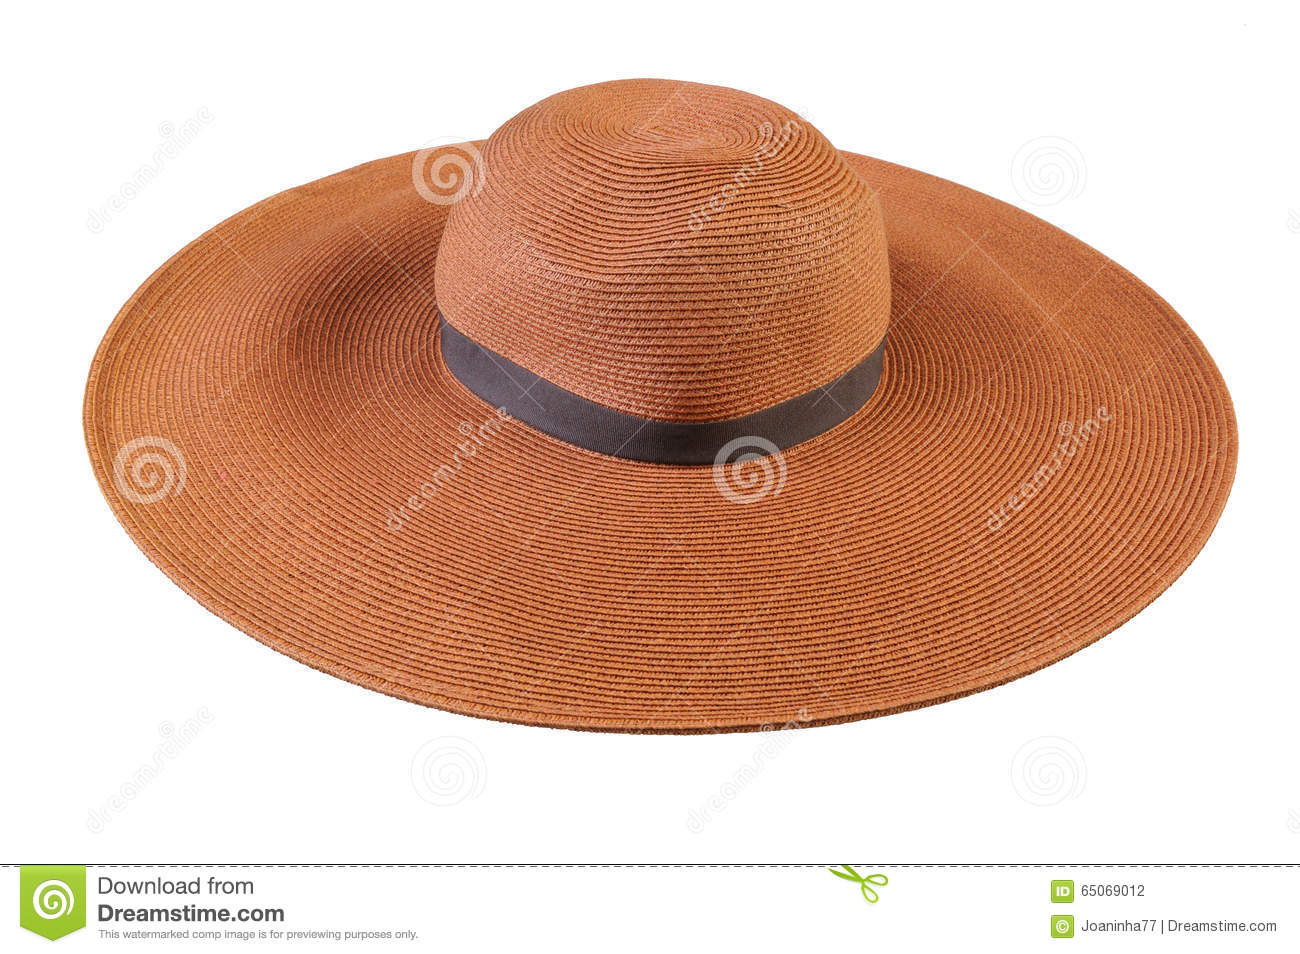 Top View Of A Round Straw Hat On A White Background. Stock Photo ... d3f06ede8534